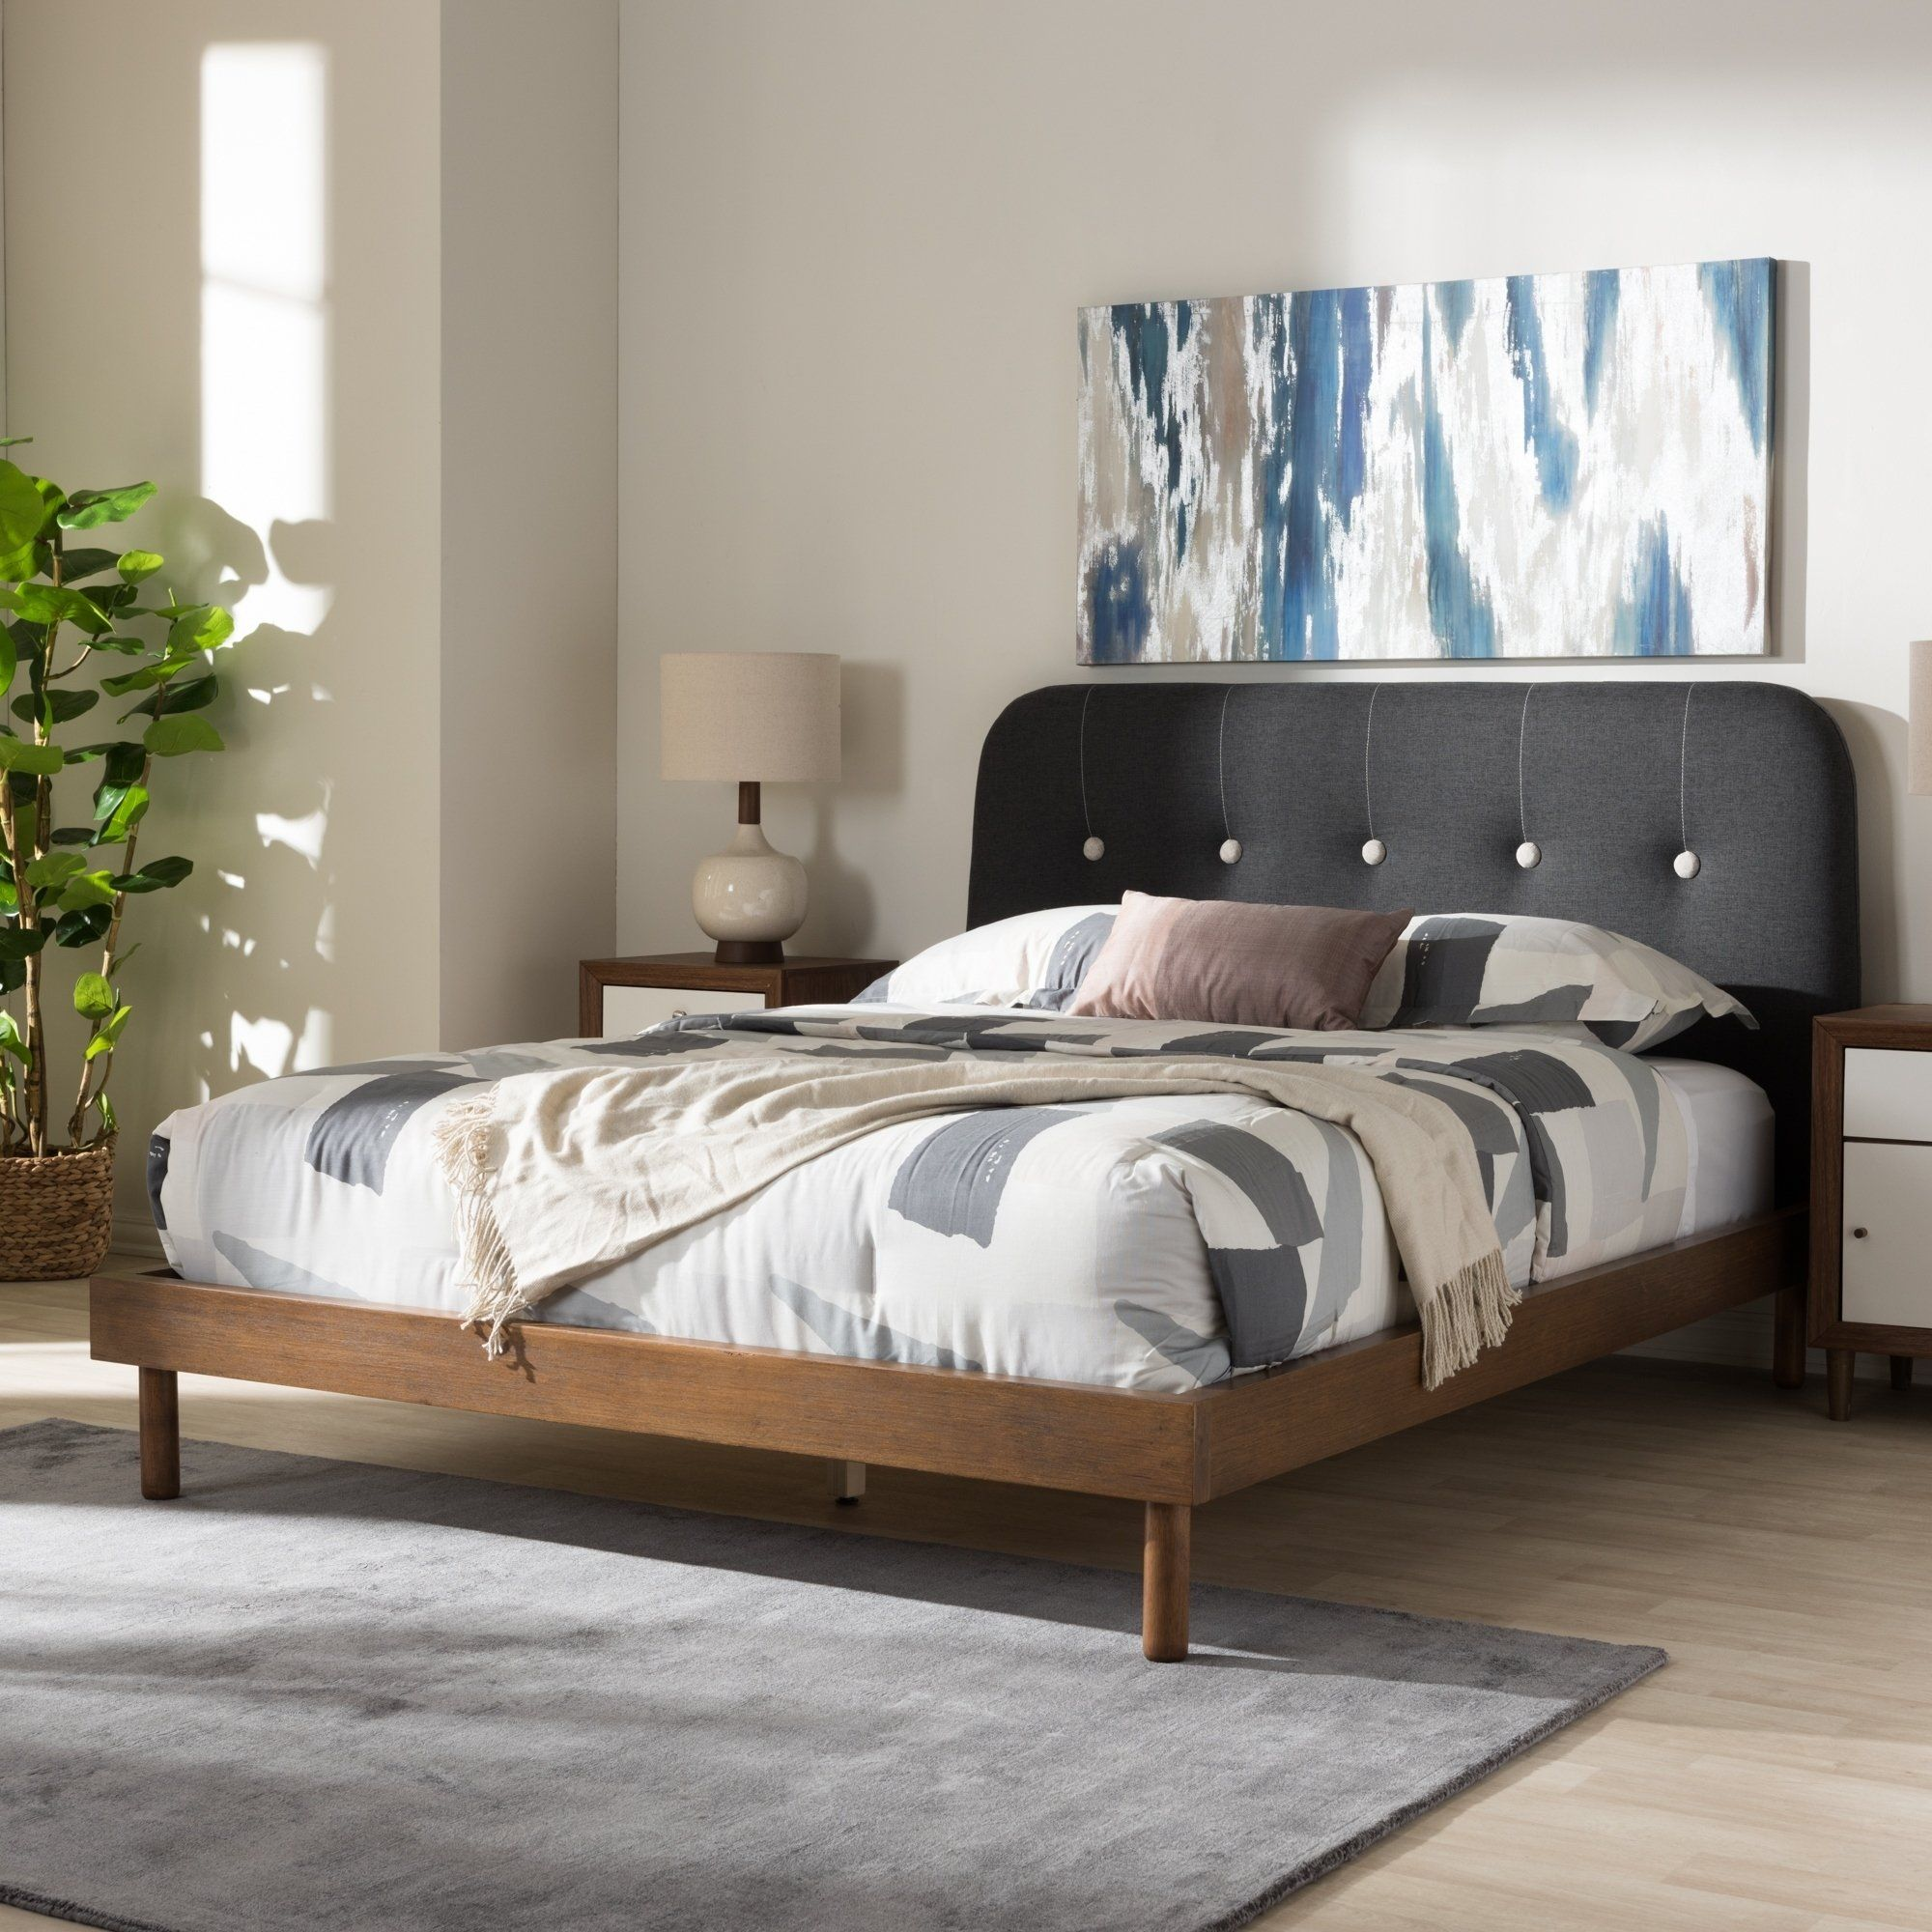 DK BROWN Fabric Cloth QUEEN Scalloped Platform Bed Frame Slats Home Bedroom NEW